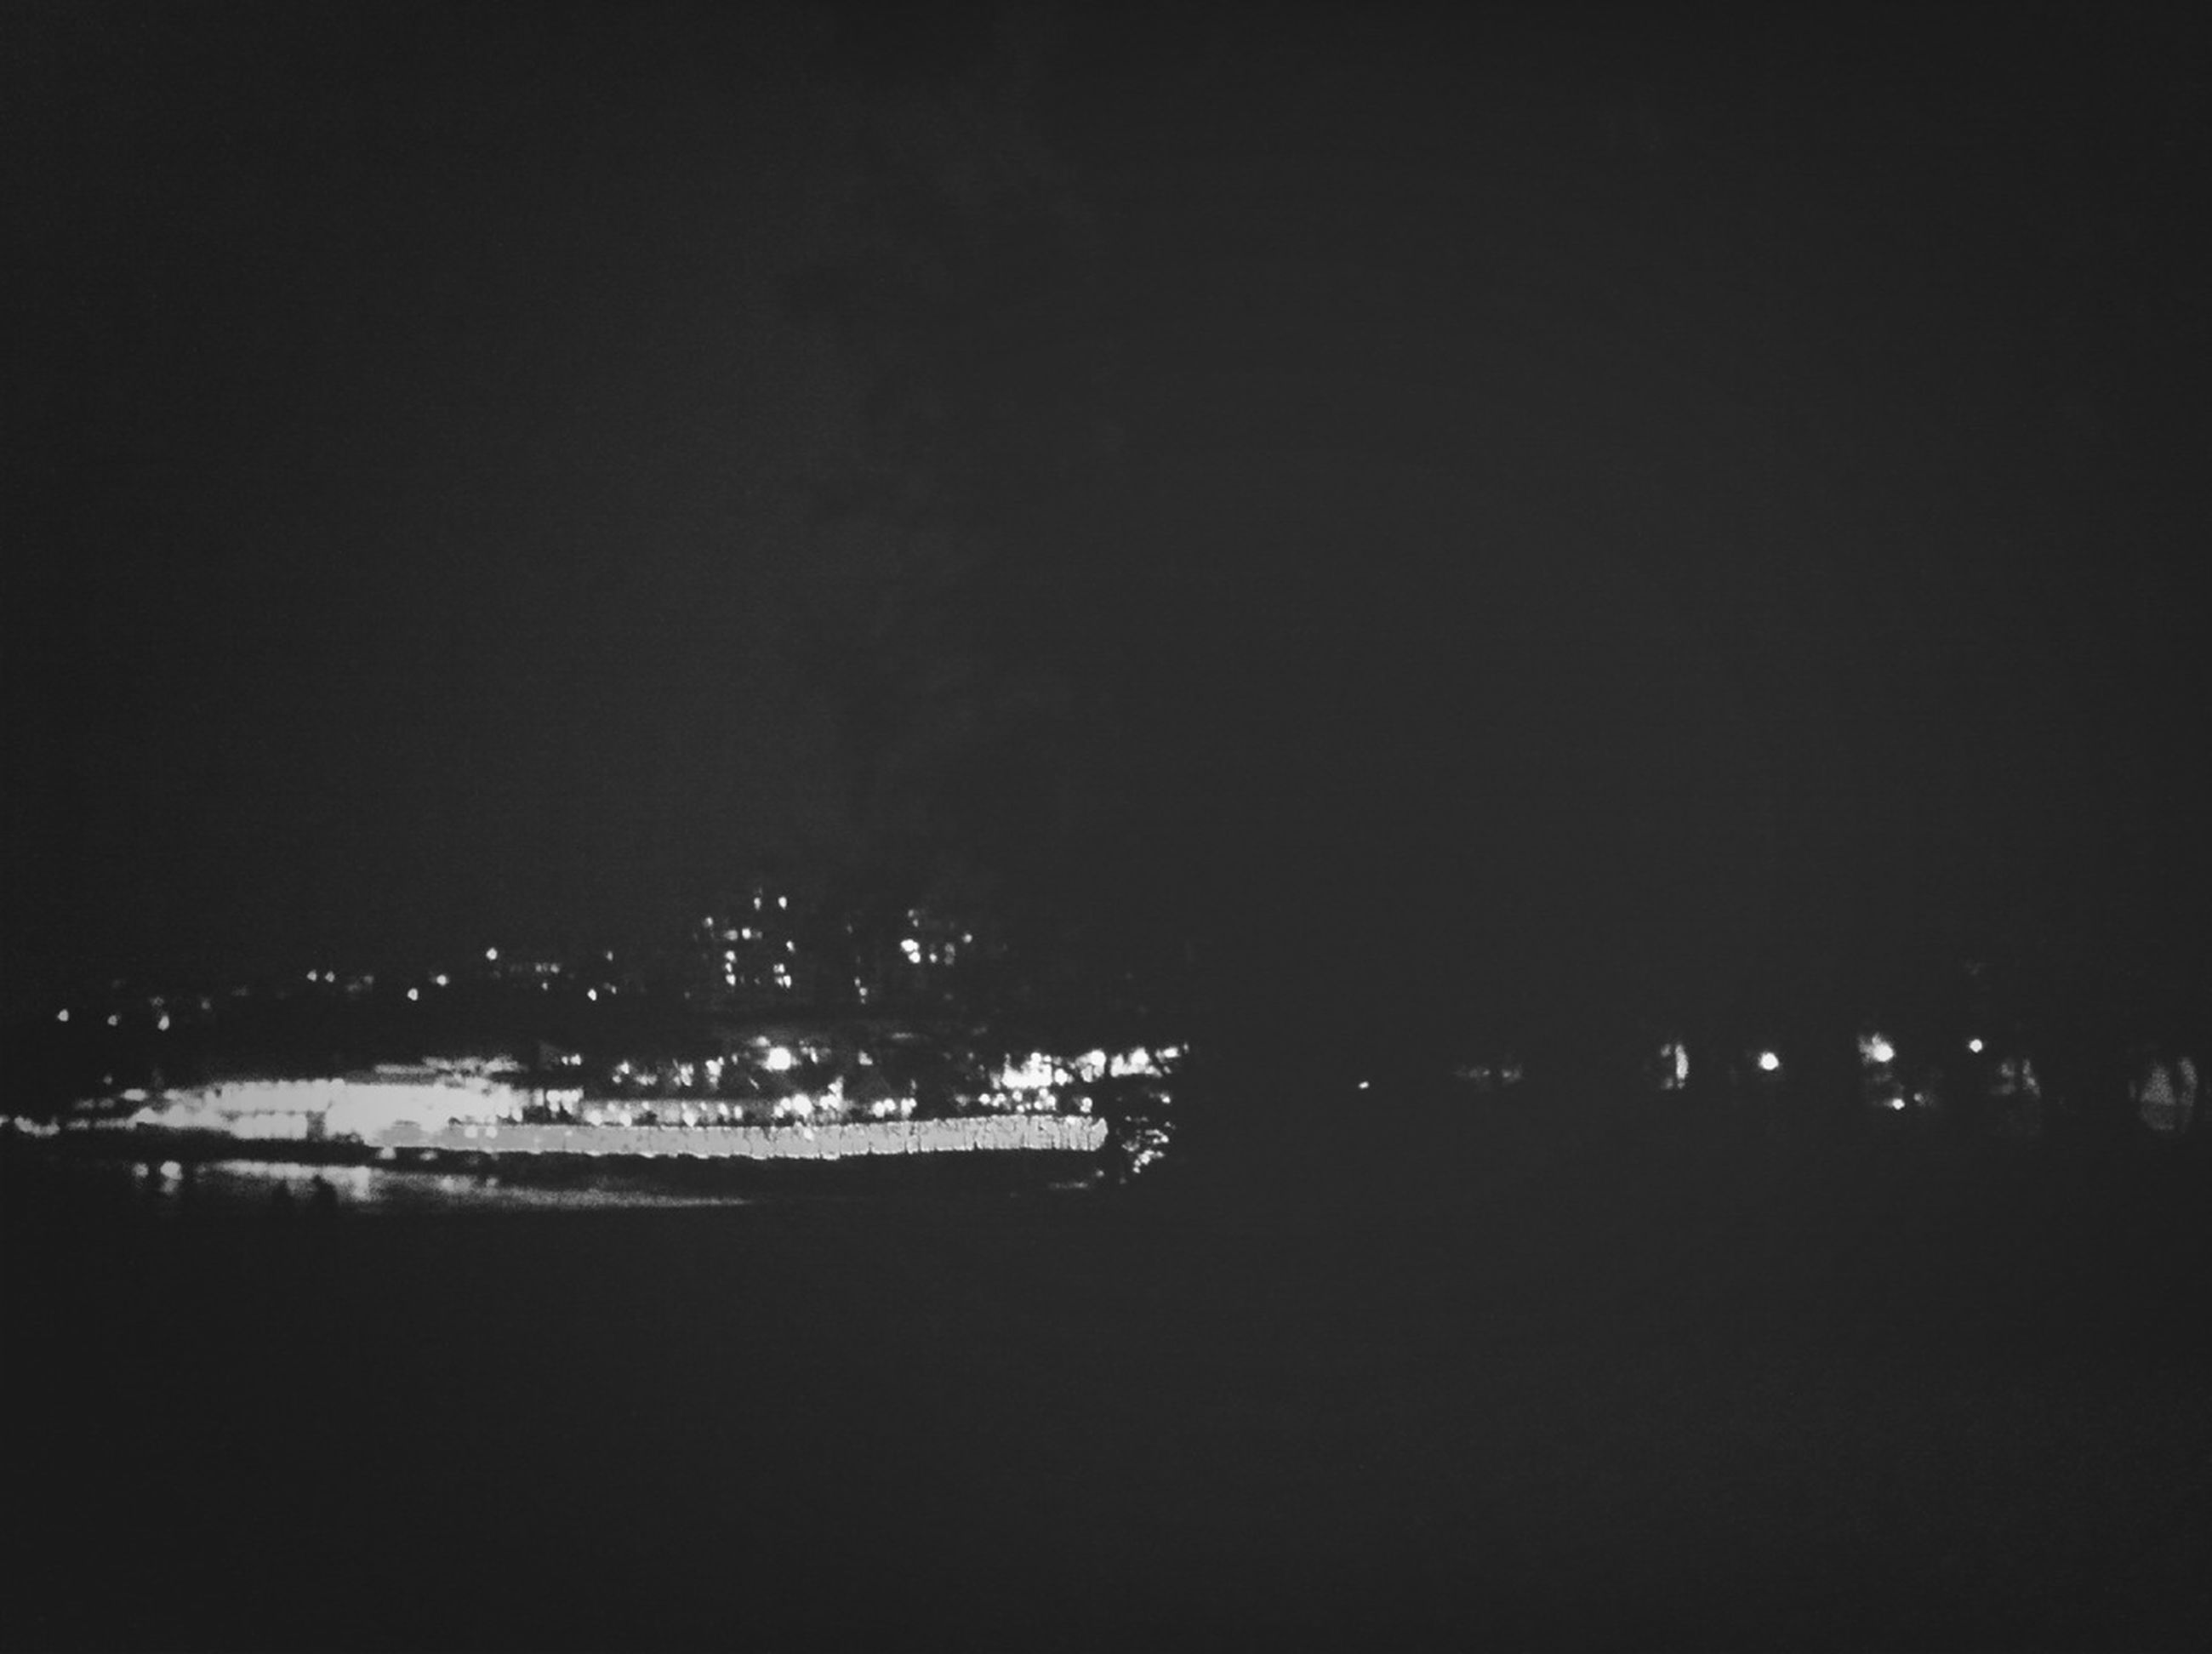 night, water, illuminated, copy space, sea, clear sky, nautical vessel, dark, river, tranquility, sky, waterfront, transportation, tranquil scene, nature, built structure, scenics, beach, outdoors, architecture